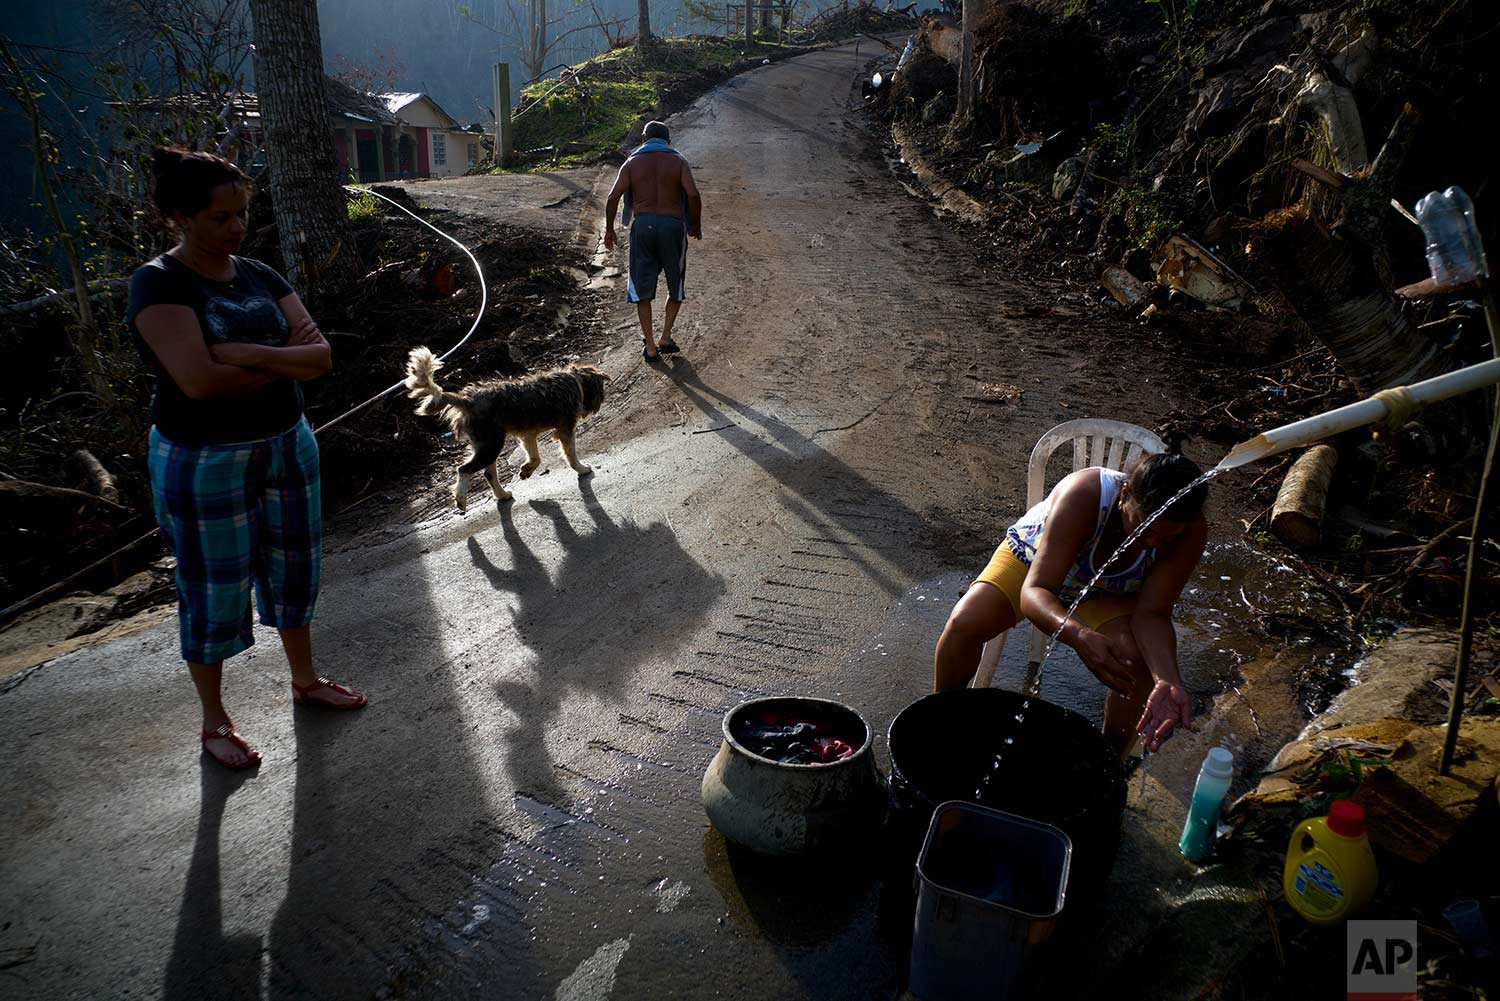 A woman washes her clothes with water from the mountain while Ramon Sortre Vazquez walks with his dog, in Morovis, Puerto Rico, Sunday, Oct. 1, 2017. (AP Photo/Ramon Espinosa)